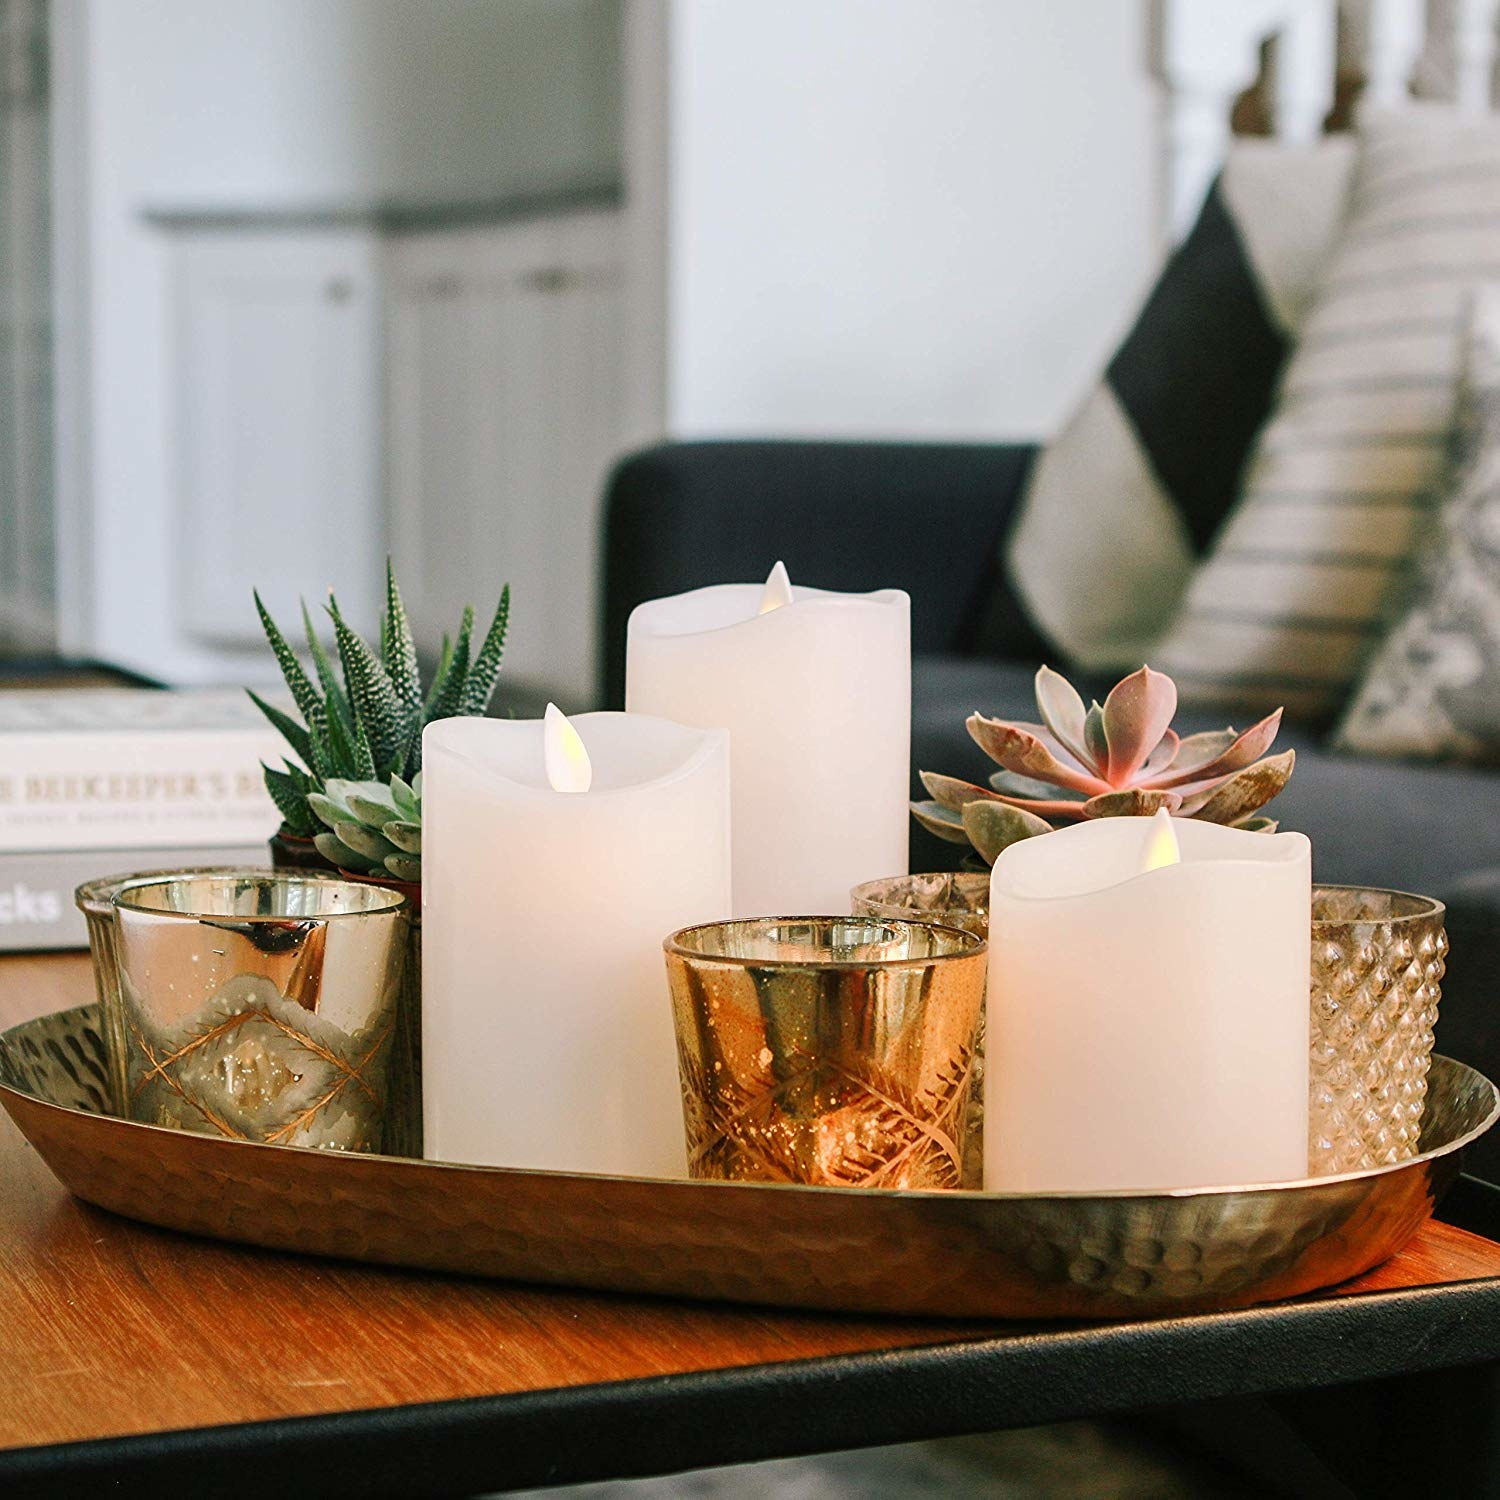 three white candles of different sizes with a light flame in sitting in a tray